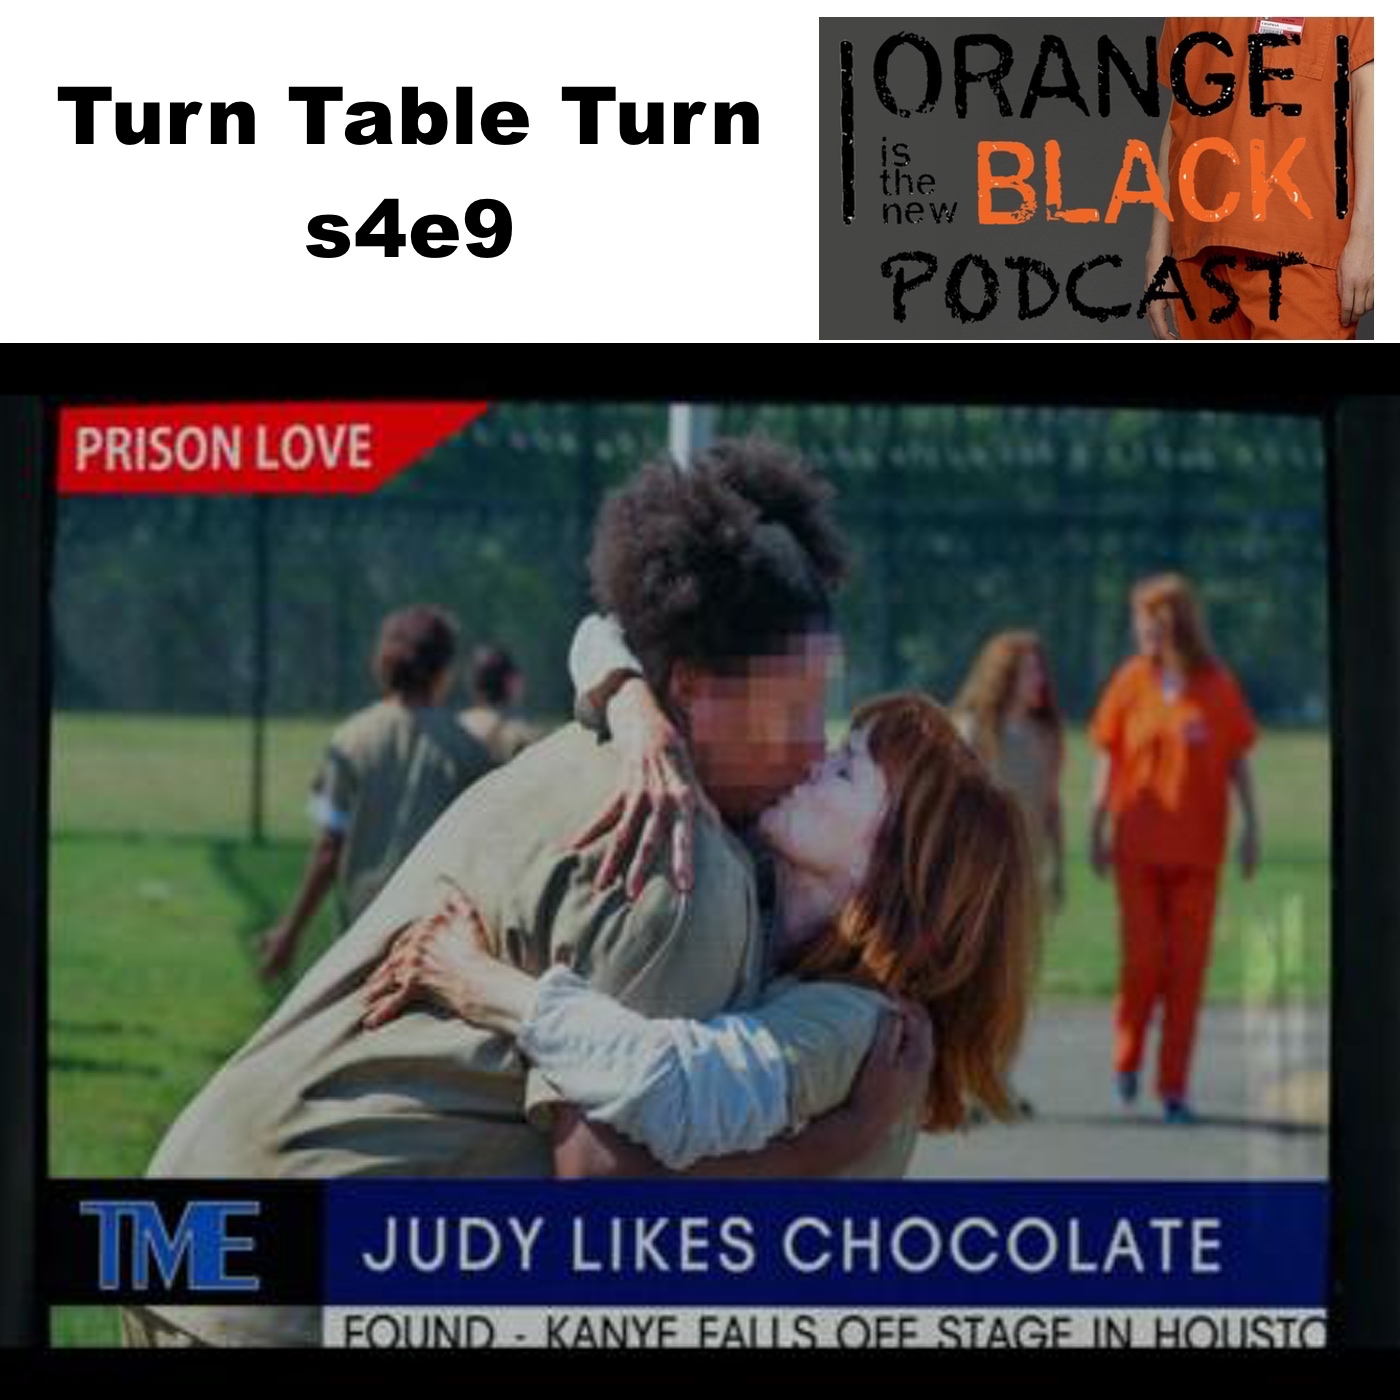 Turn Table Turn s4e9 - Orange is the New Black Podcast